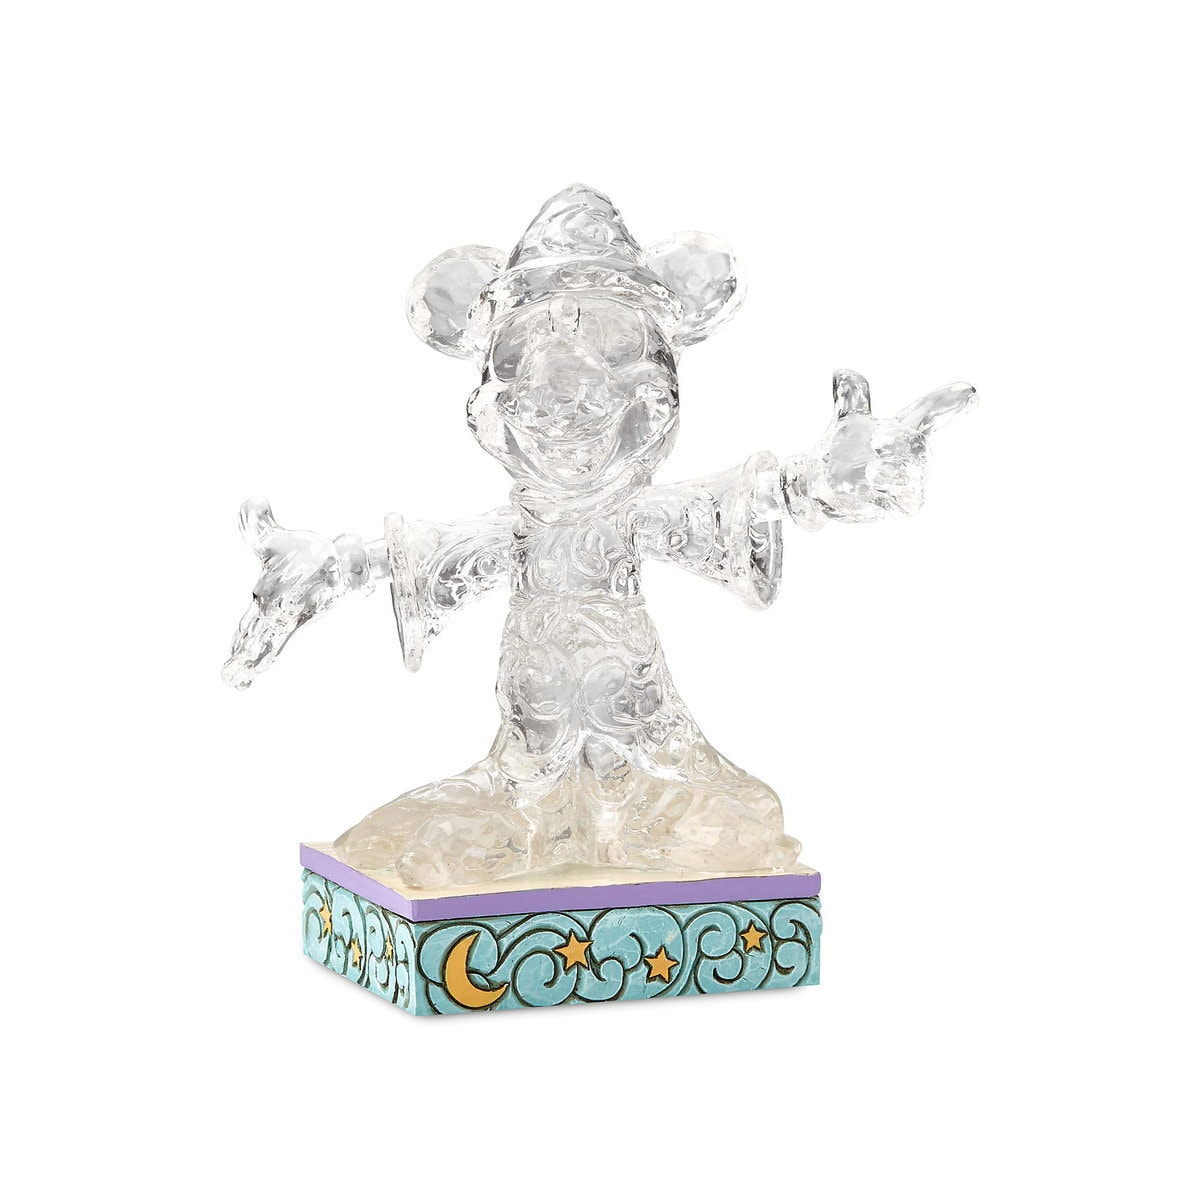 1e78903a5 Product Image of Mickey Mouse   Sorcerer Mickey Illuminated   Figure by Jim  Shore